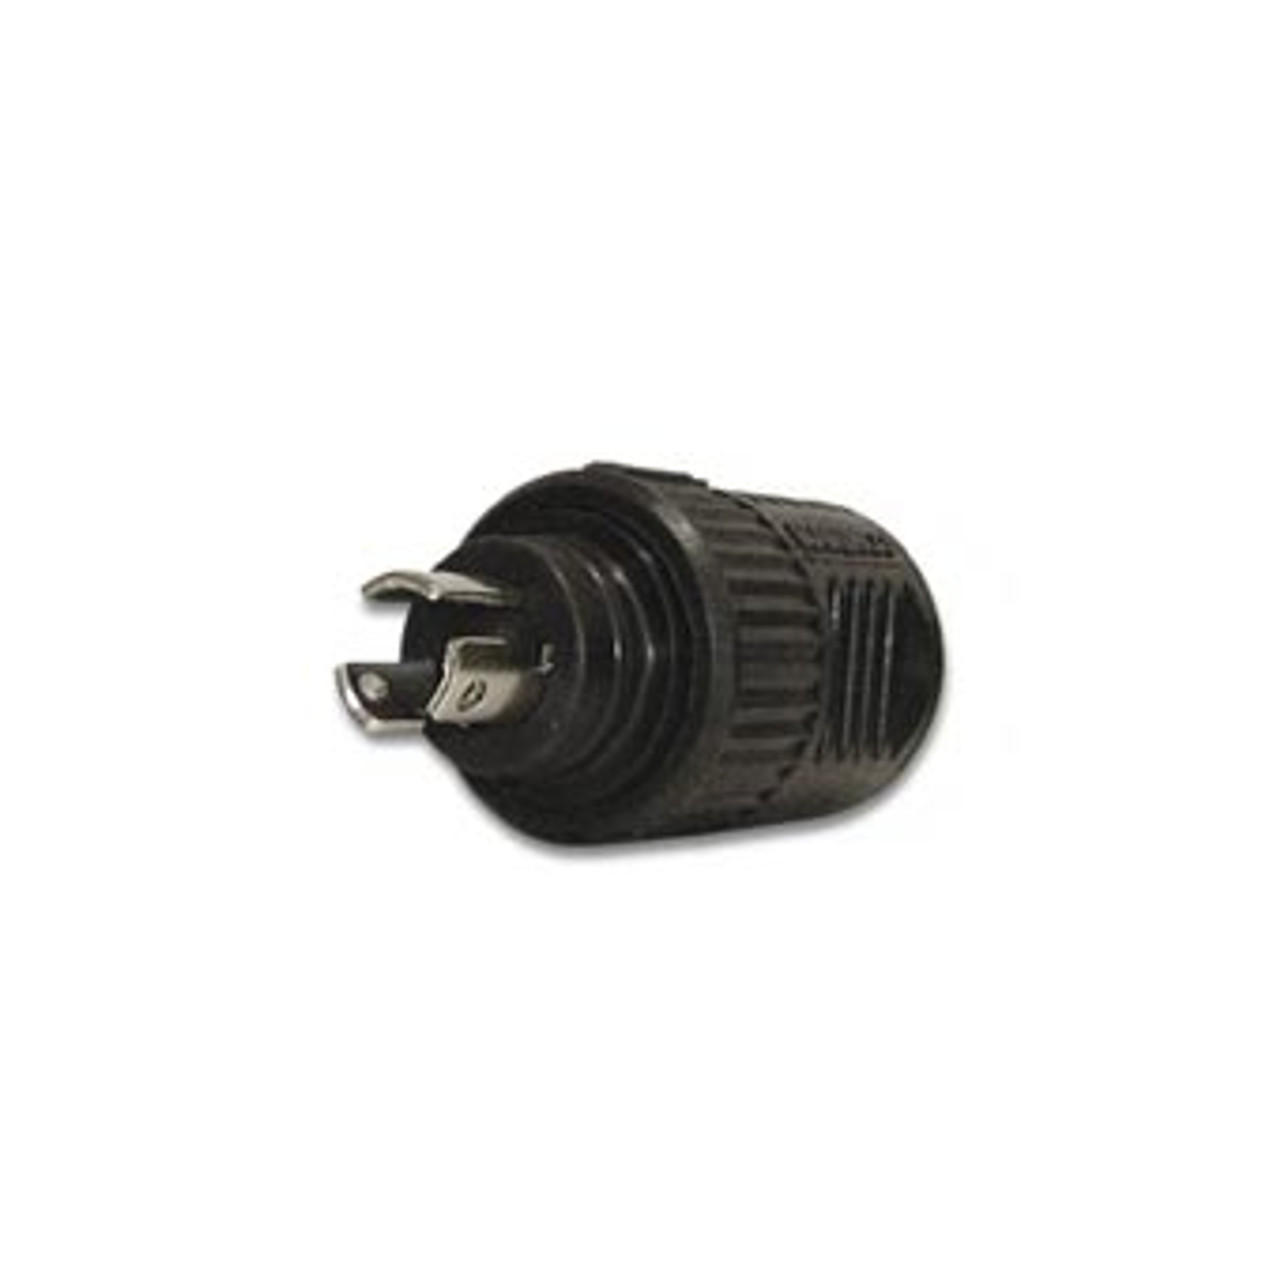 CONNECTPRO MALE PLUG 30A 3 CONDUCTOR